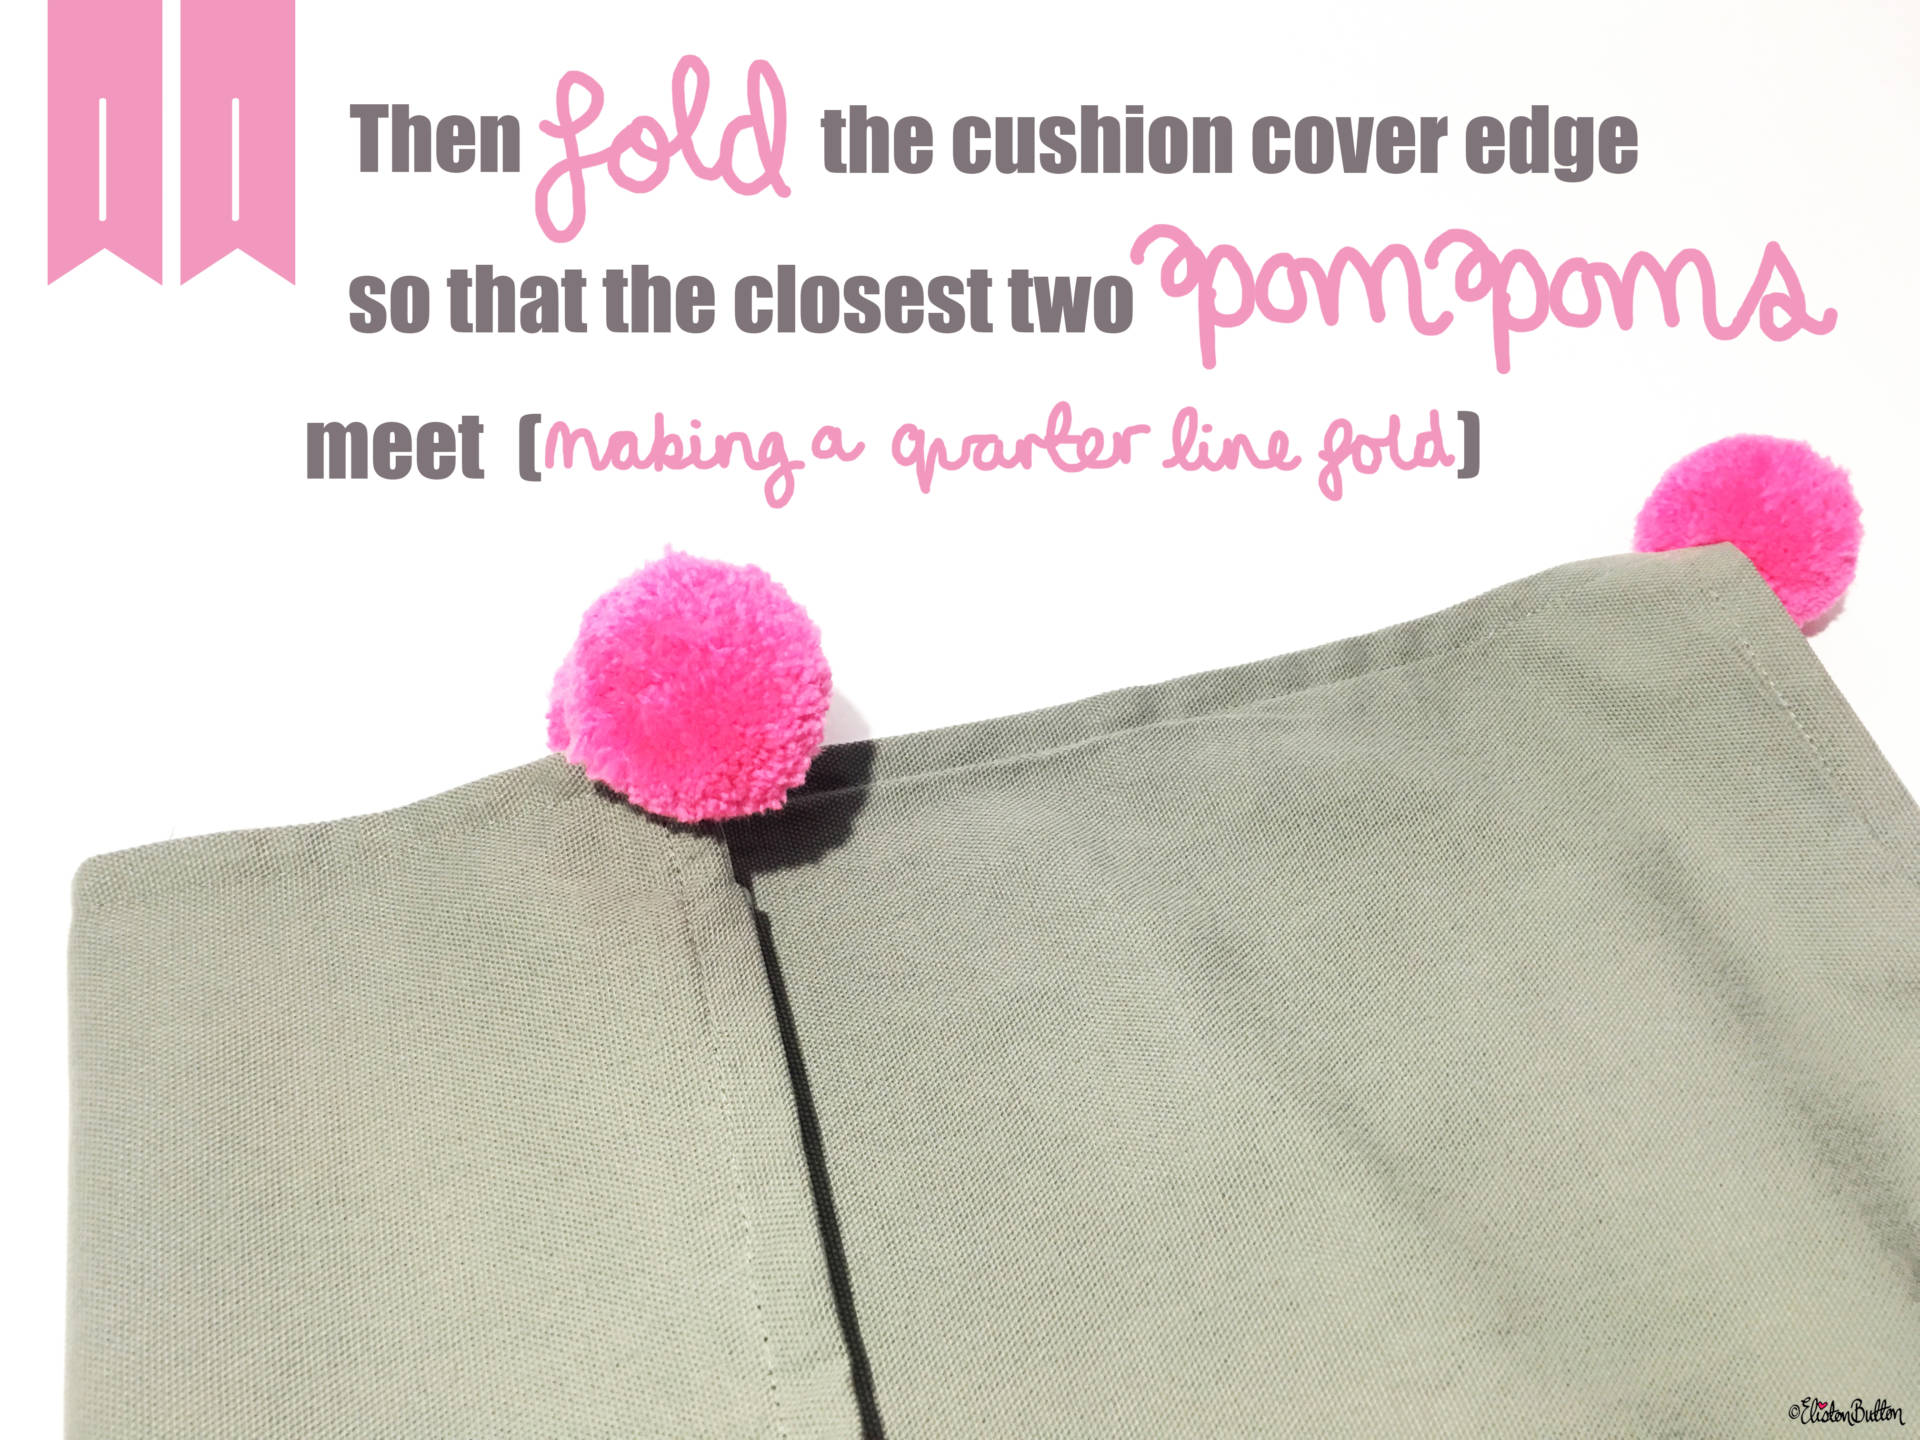 17. Fold the Cushion Cover Edge so that the Closest Two Pom Poms Meet (Making a Quarter Line Fold) - Tutorial Tuesday – Pom Pom Cushion Cover at www.elistonbutton.com - Eliston Button - That Crafty Kid – Art, Design, Craft & Adventure.